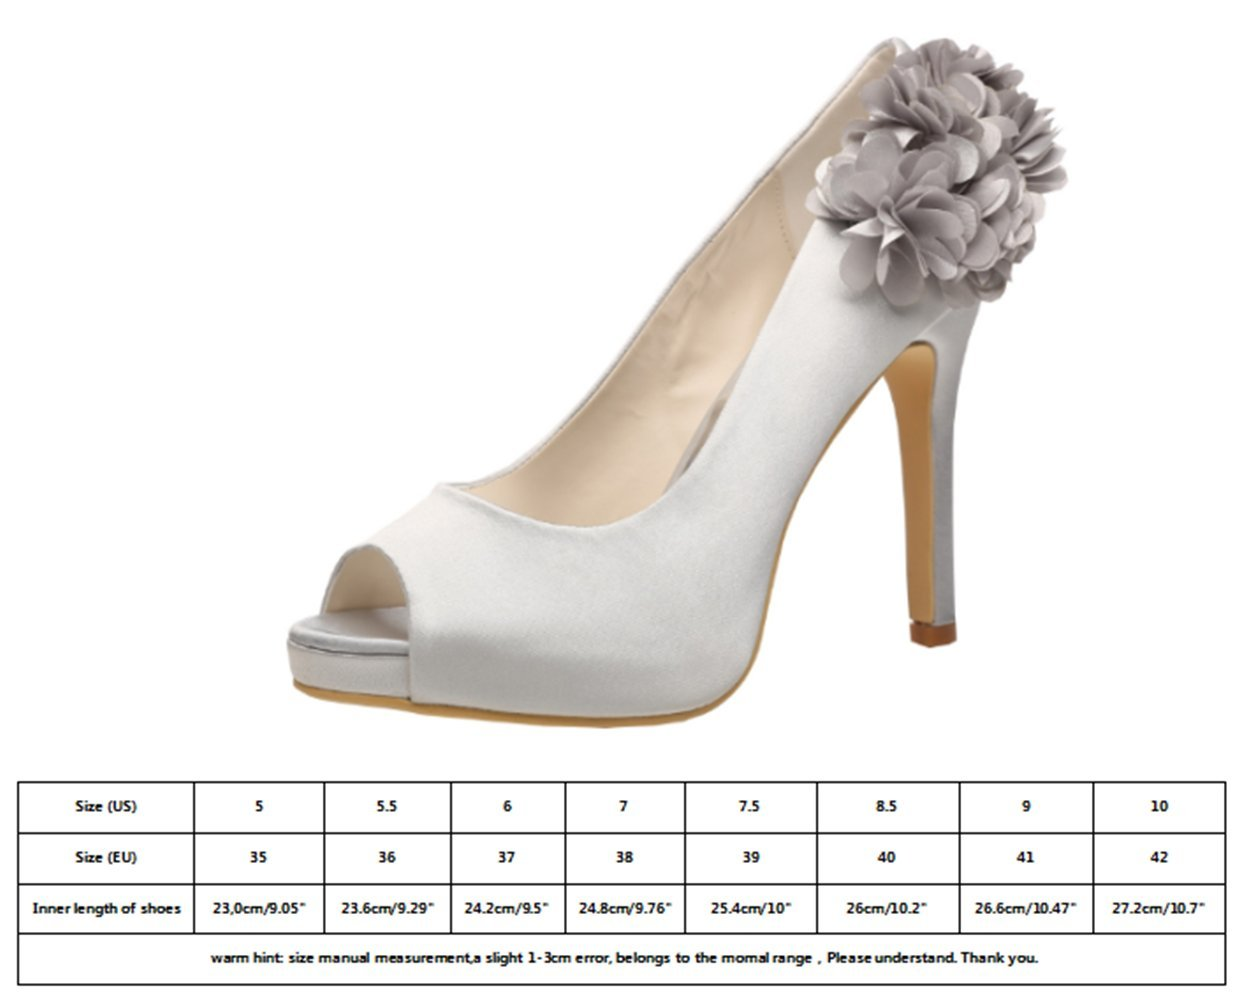 M MULGARIA Women High Heel Pumps Platform Peep Toe Flowers Shoes Satin Evening Prom Wedding Shoes Flowers B0791F6WHQ EU 37/6B(M)US|Silver 0dc815